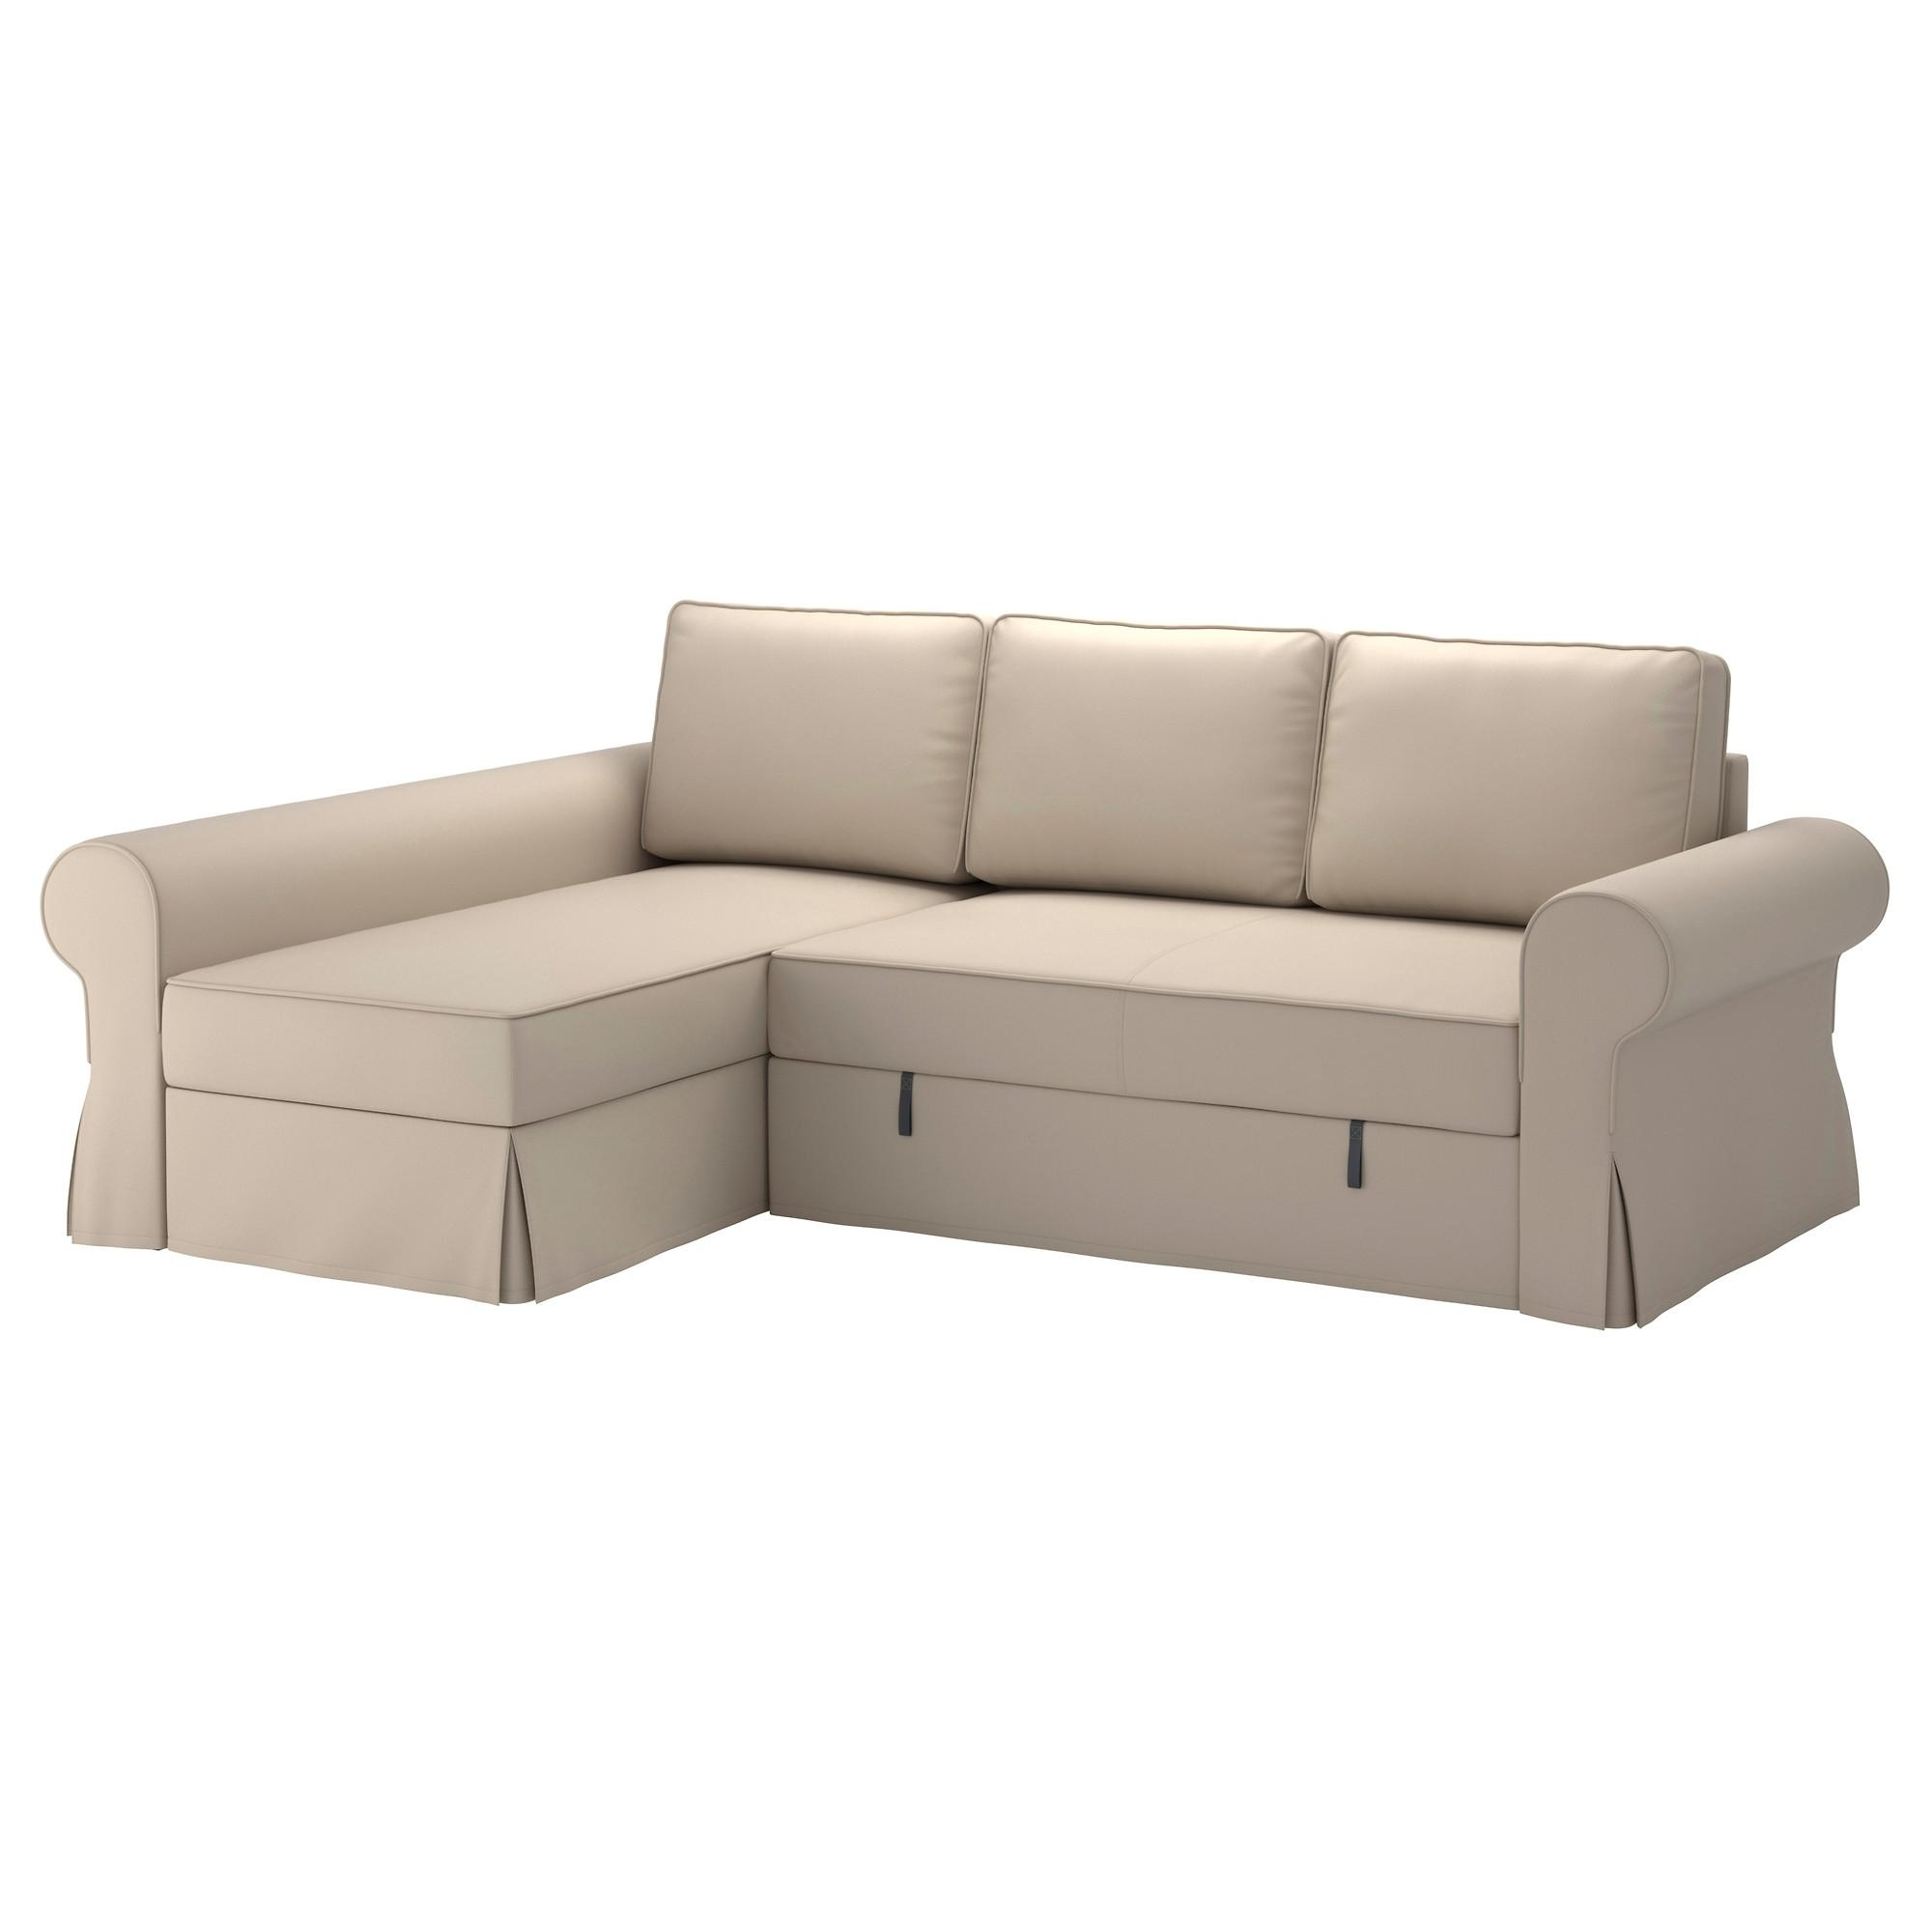 20 photos ikea chaise lounge sofa sofa ideas - Chaise longue sofa bed ...